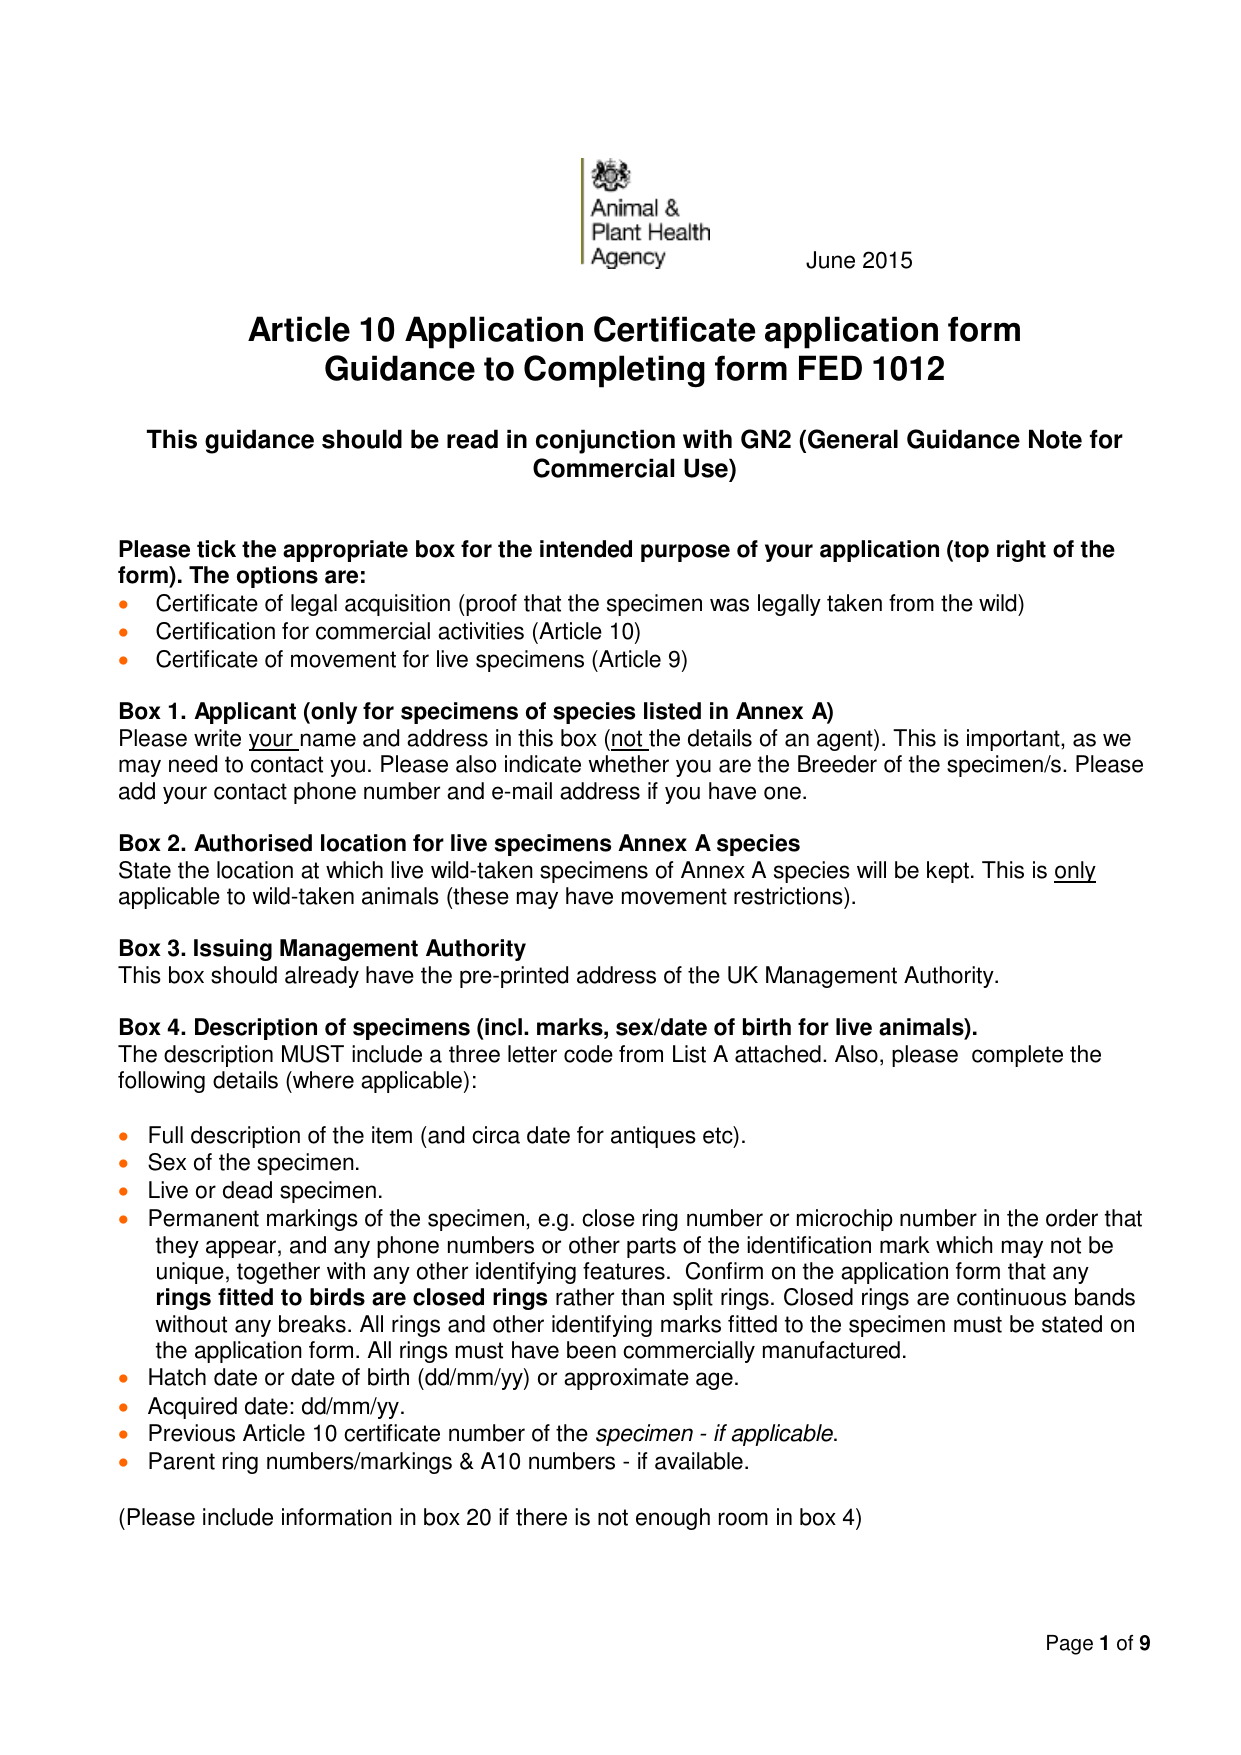 Form explorer attachment article 10 certificate application form guidance to completing form fed1012 aiddatafo Image collections